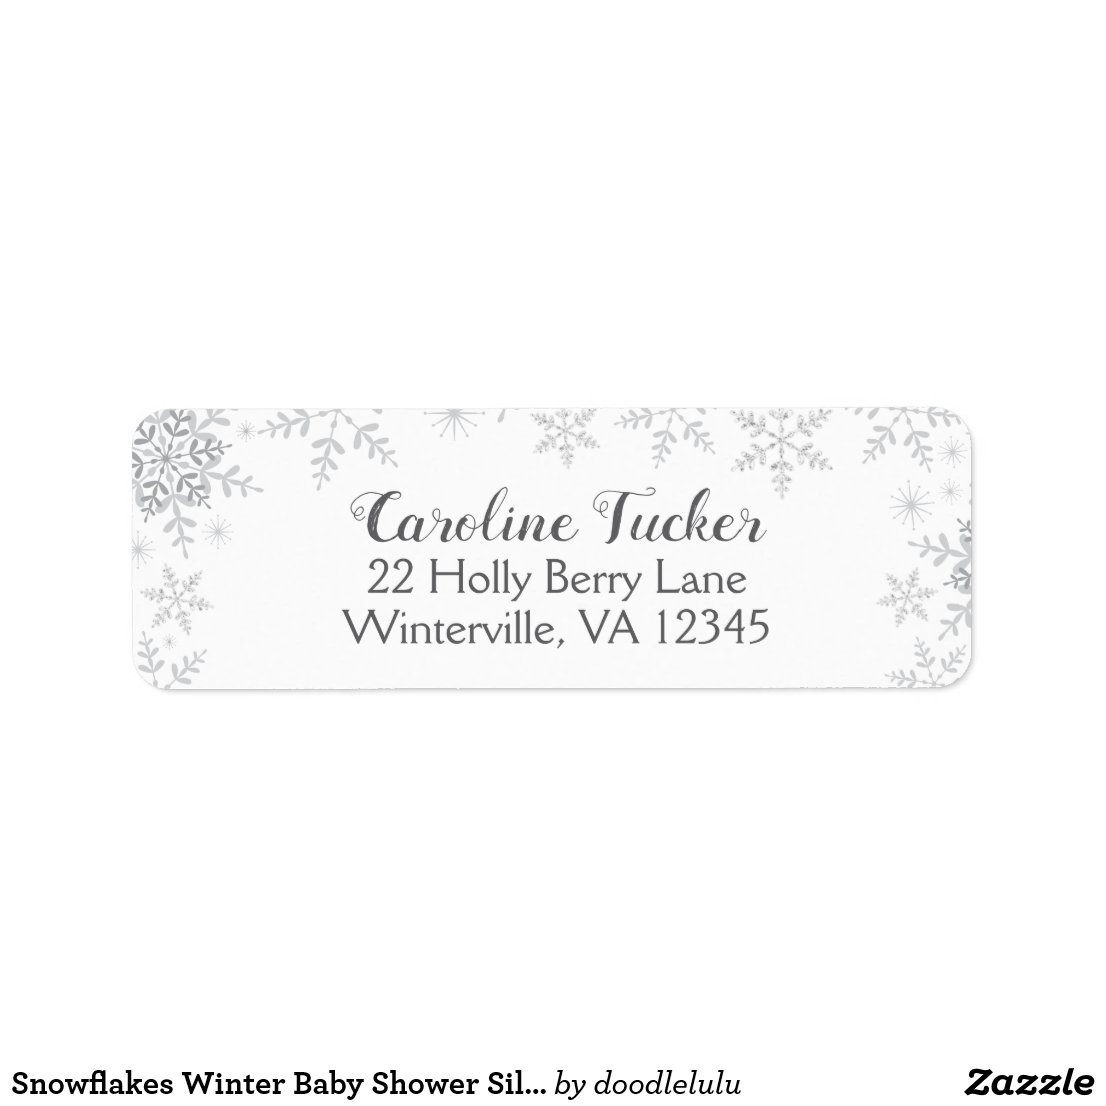 Snowflakes Winter Baby Shower Silver Glitter Label